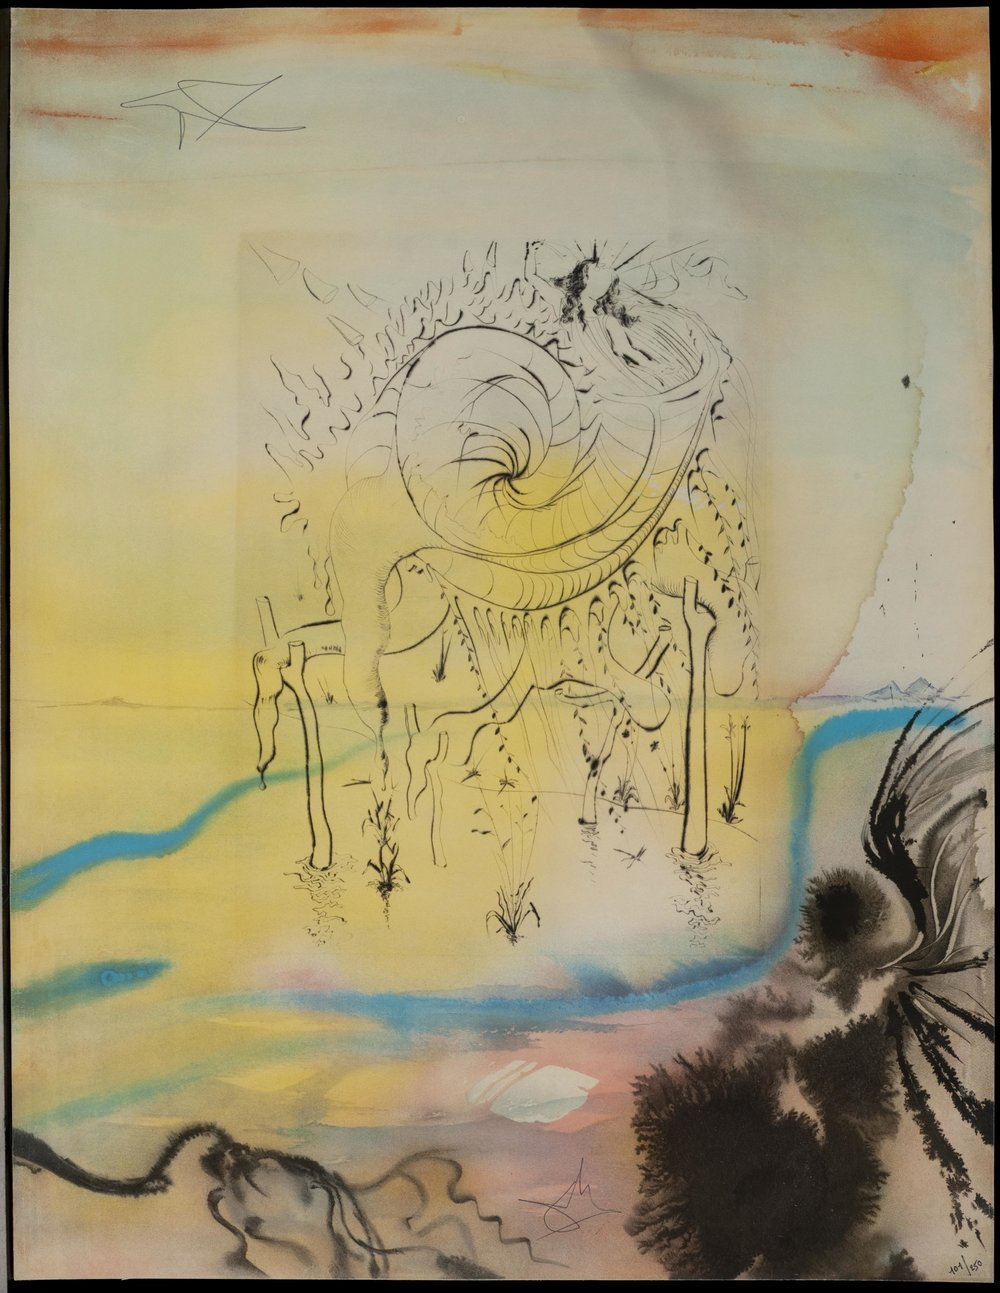 Moise sauvé des eaux , 1975 Lithograph on soft glove sheepskin 25 50/127h x 19 87/127w in